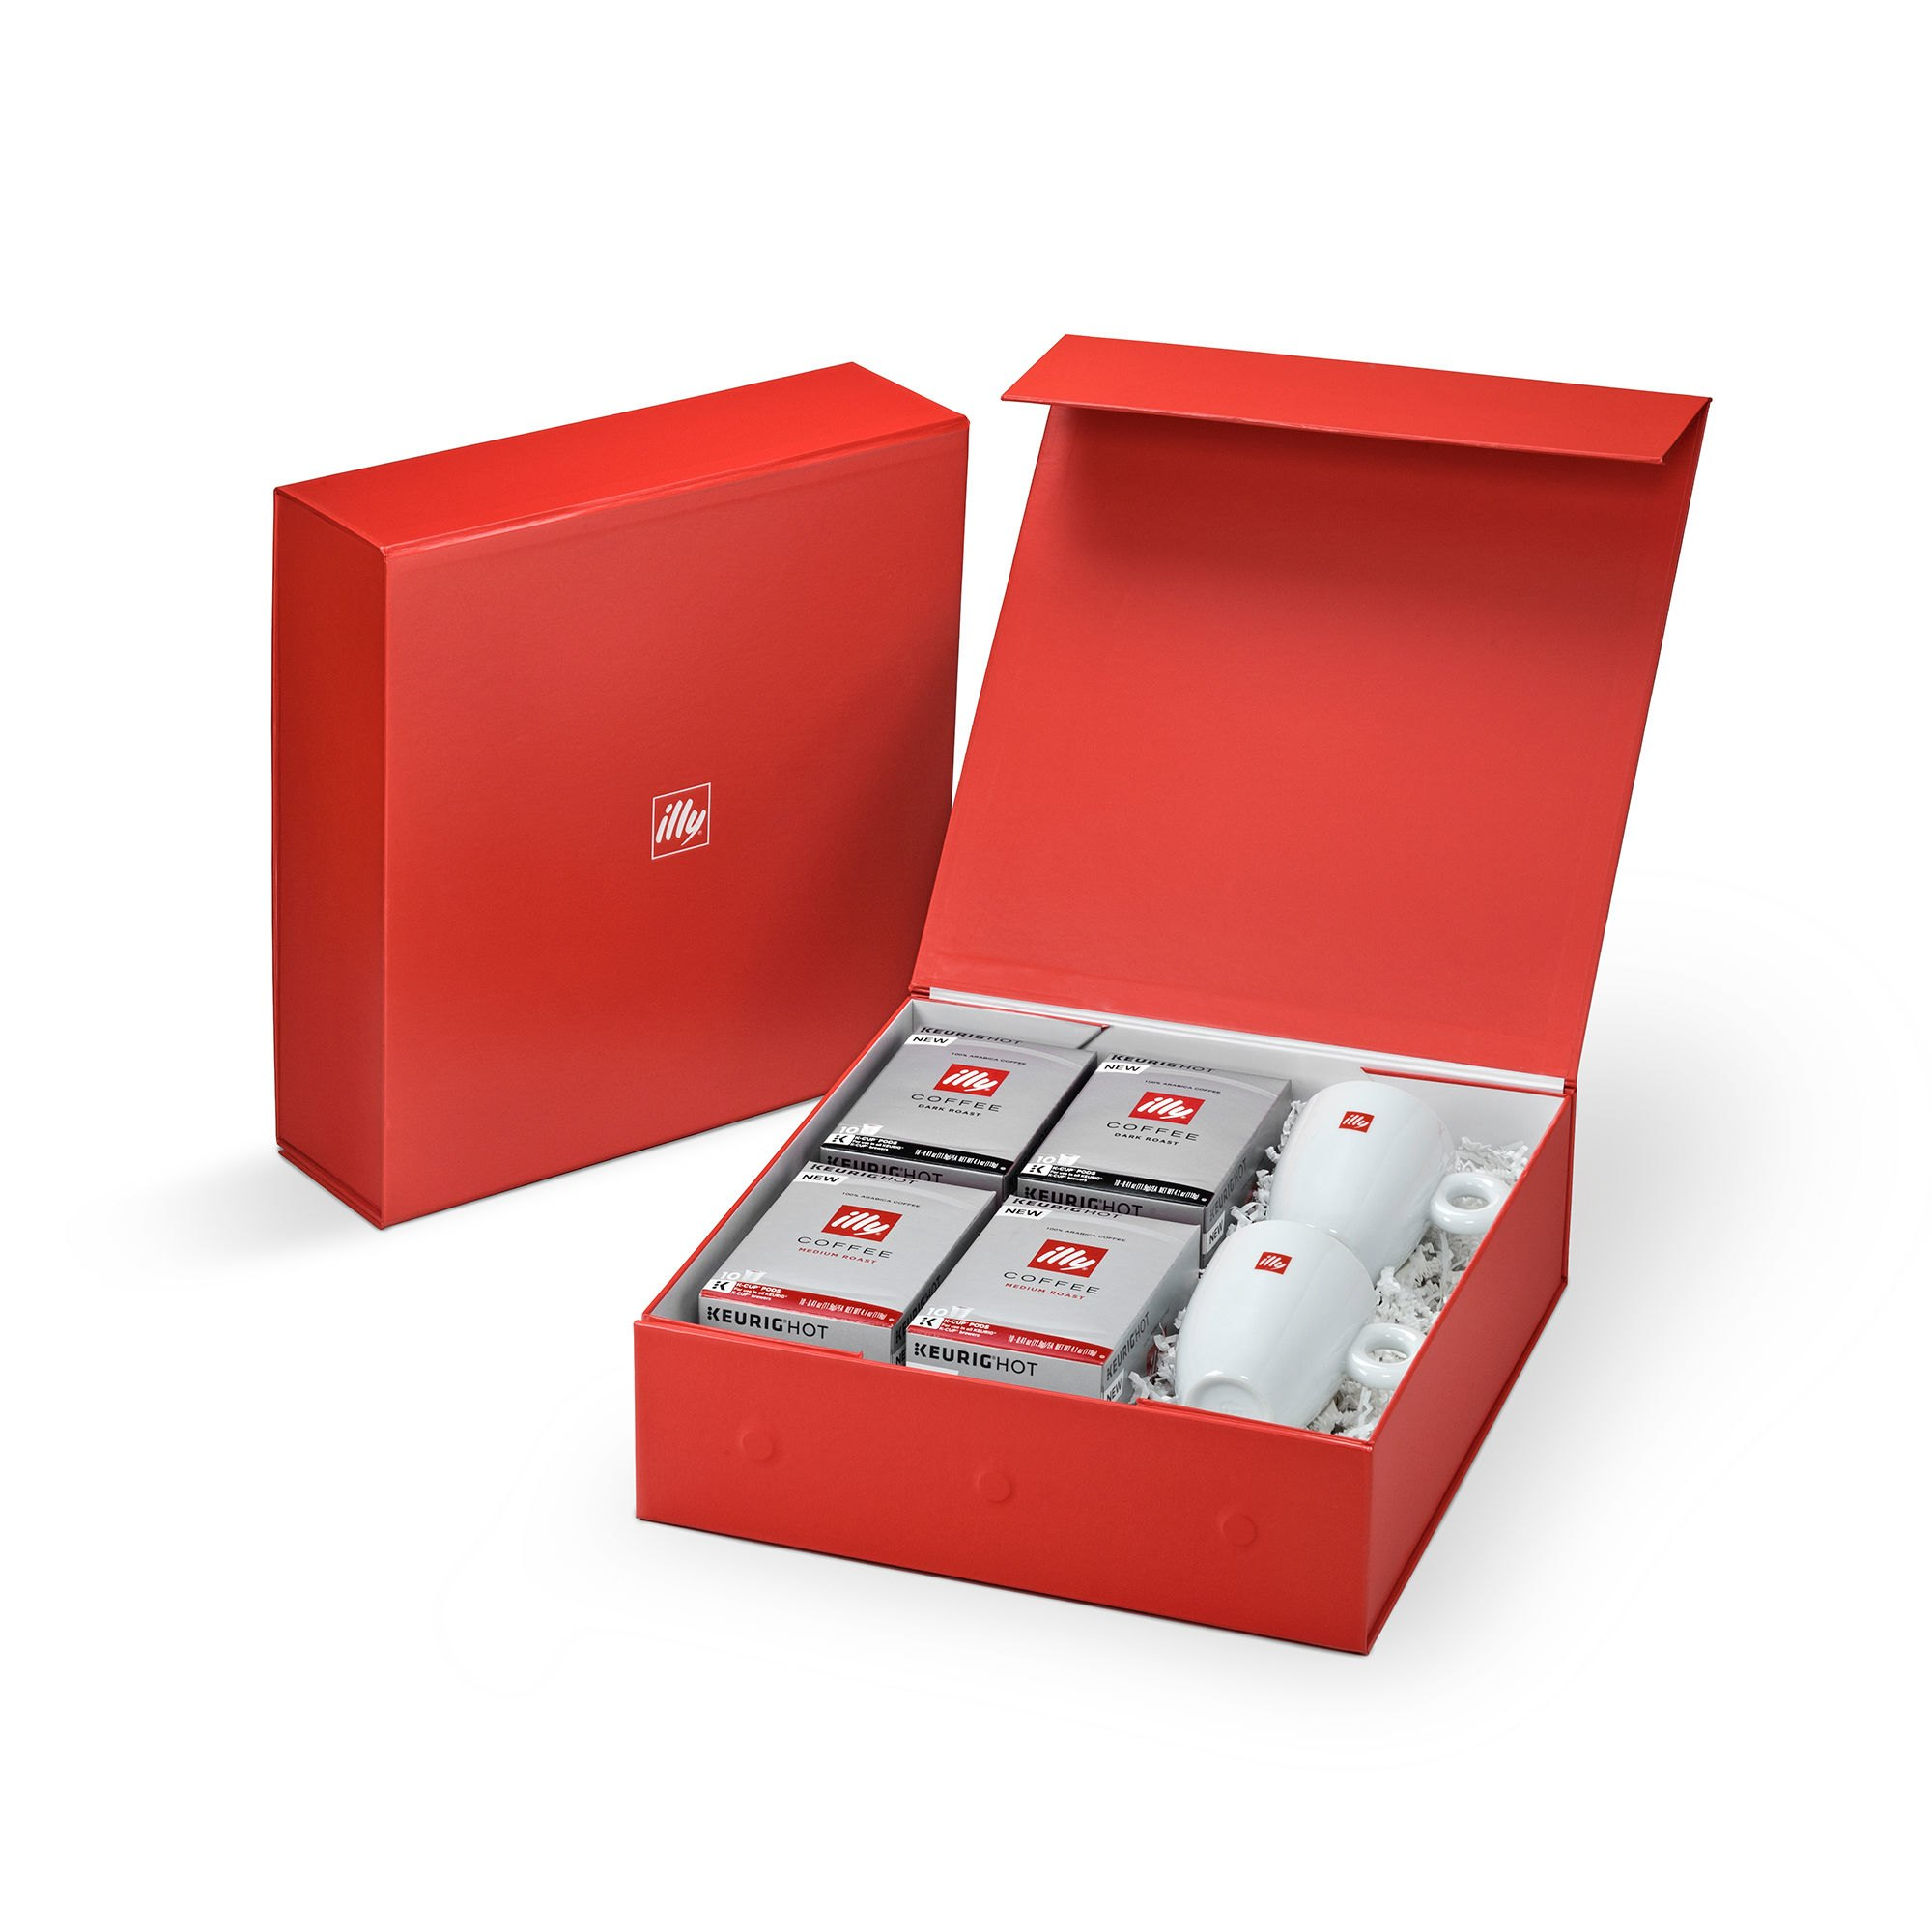 Customizable Coffee Gift Sets - illy eShop